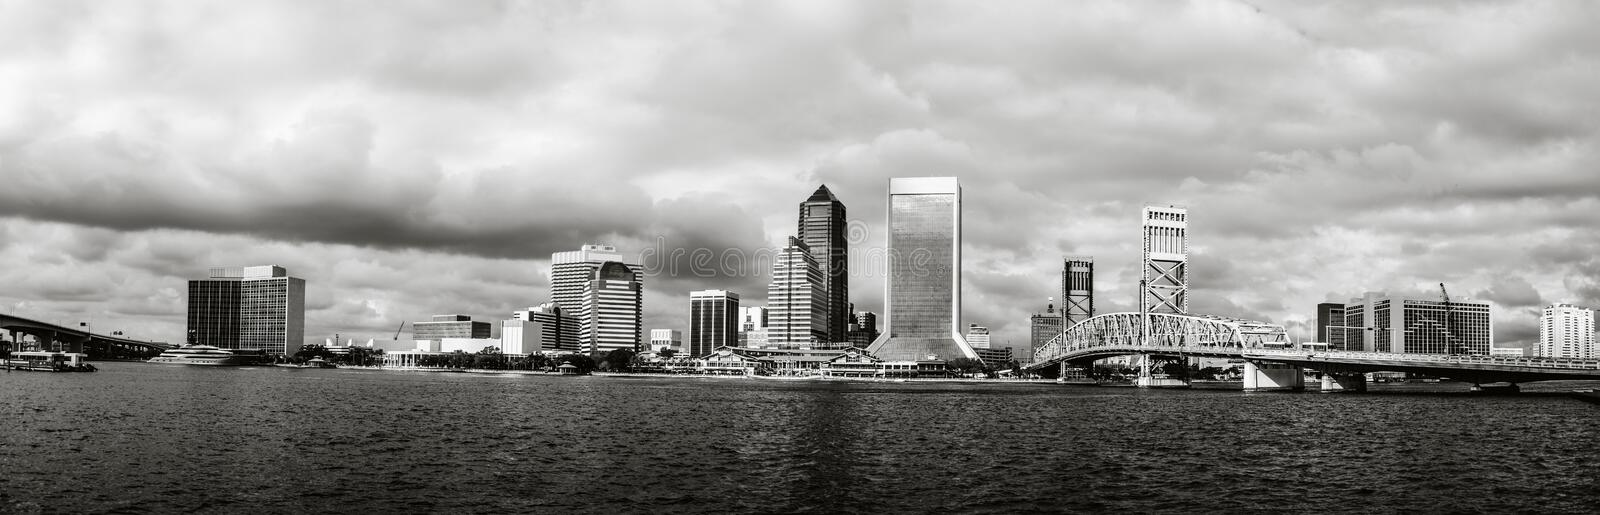 Jacksonville Skyline in Florida royalty free stock images